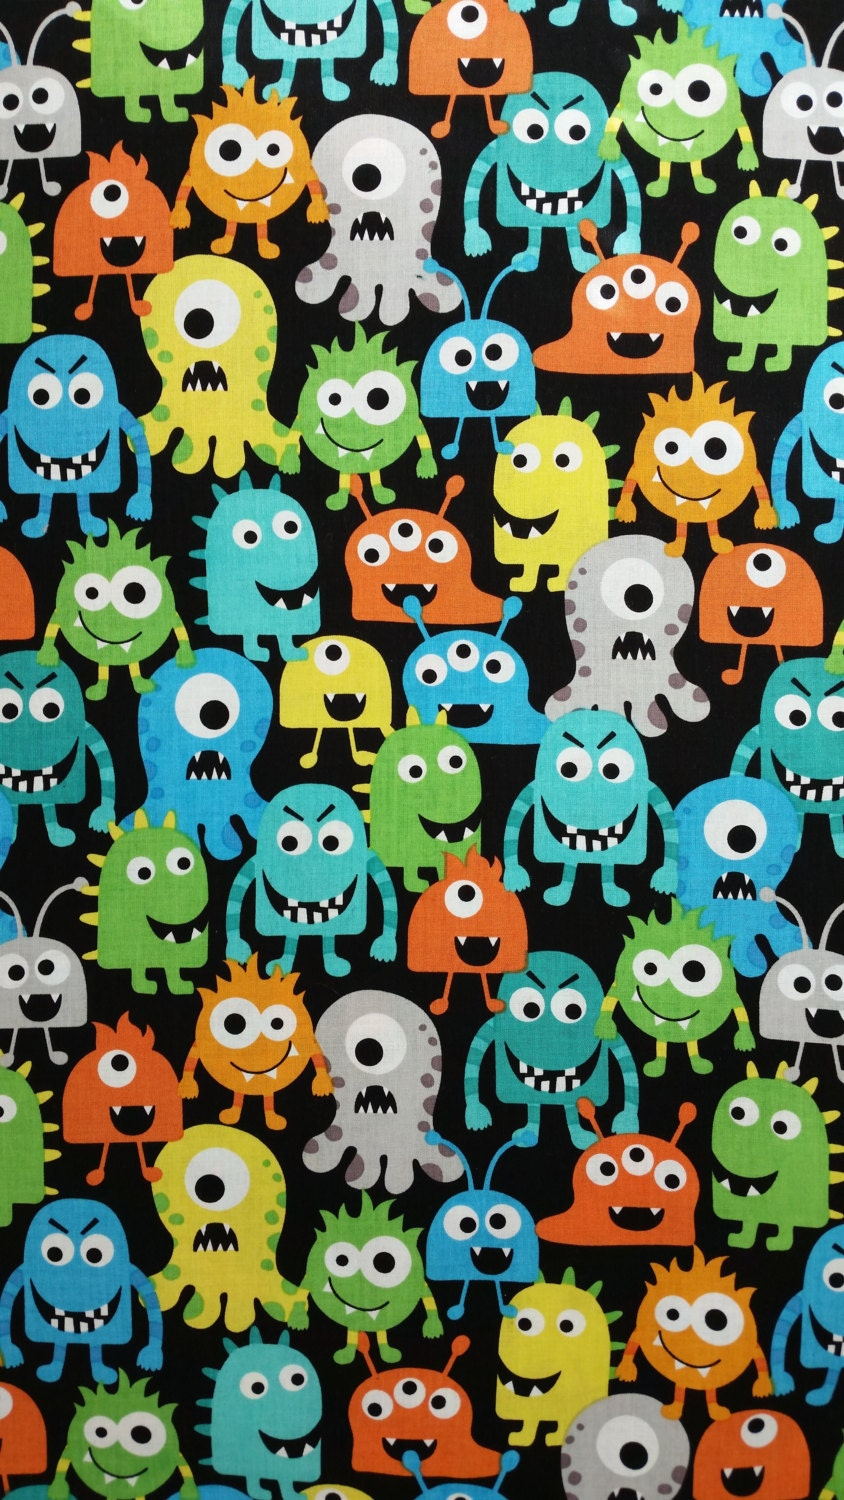 Cotton fabric monster pack black by the yard bright for Childrens cotton fabric by the yard